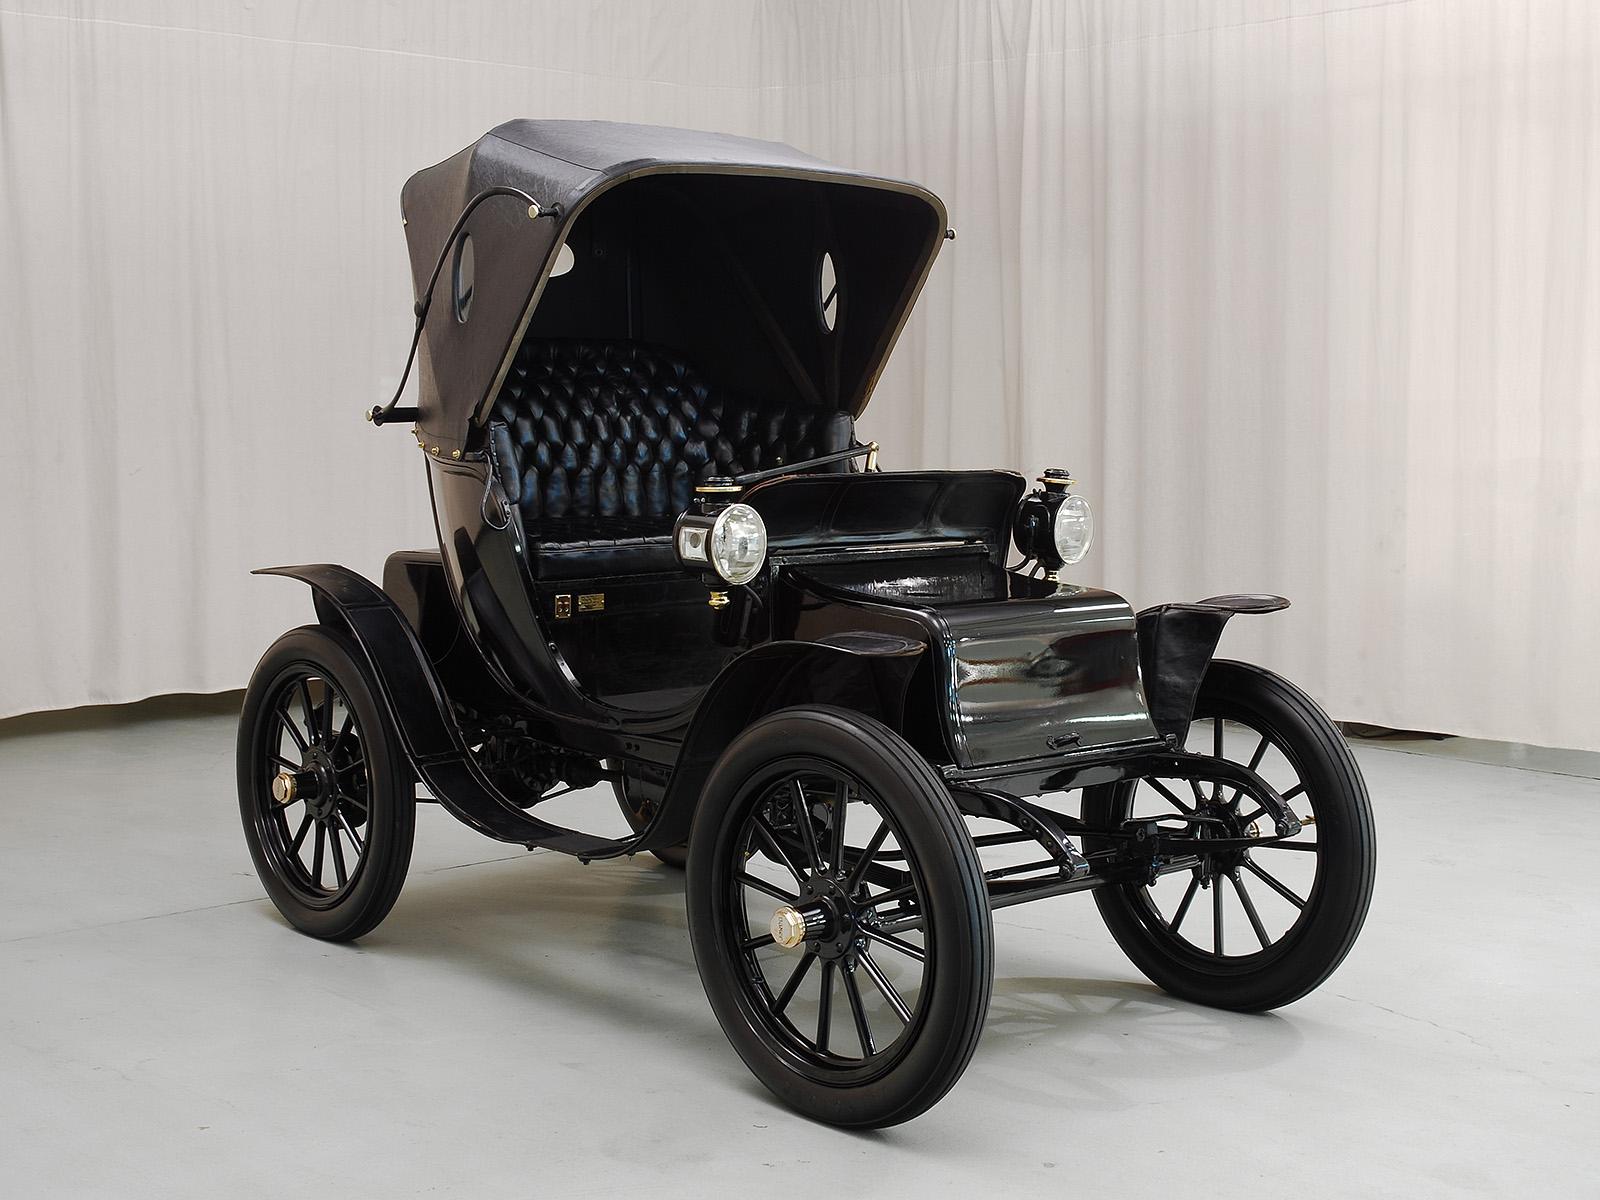 Cars For Sale In Cleveland Ohio >> 1908 Baker Electric Model V Victoria For Sale | Car ...